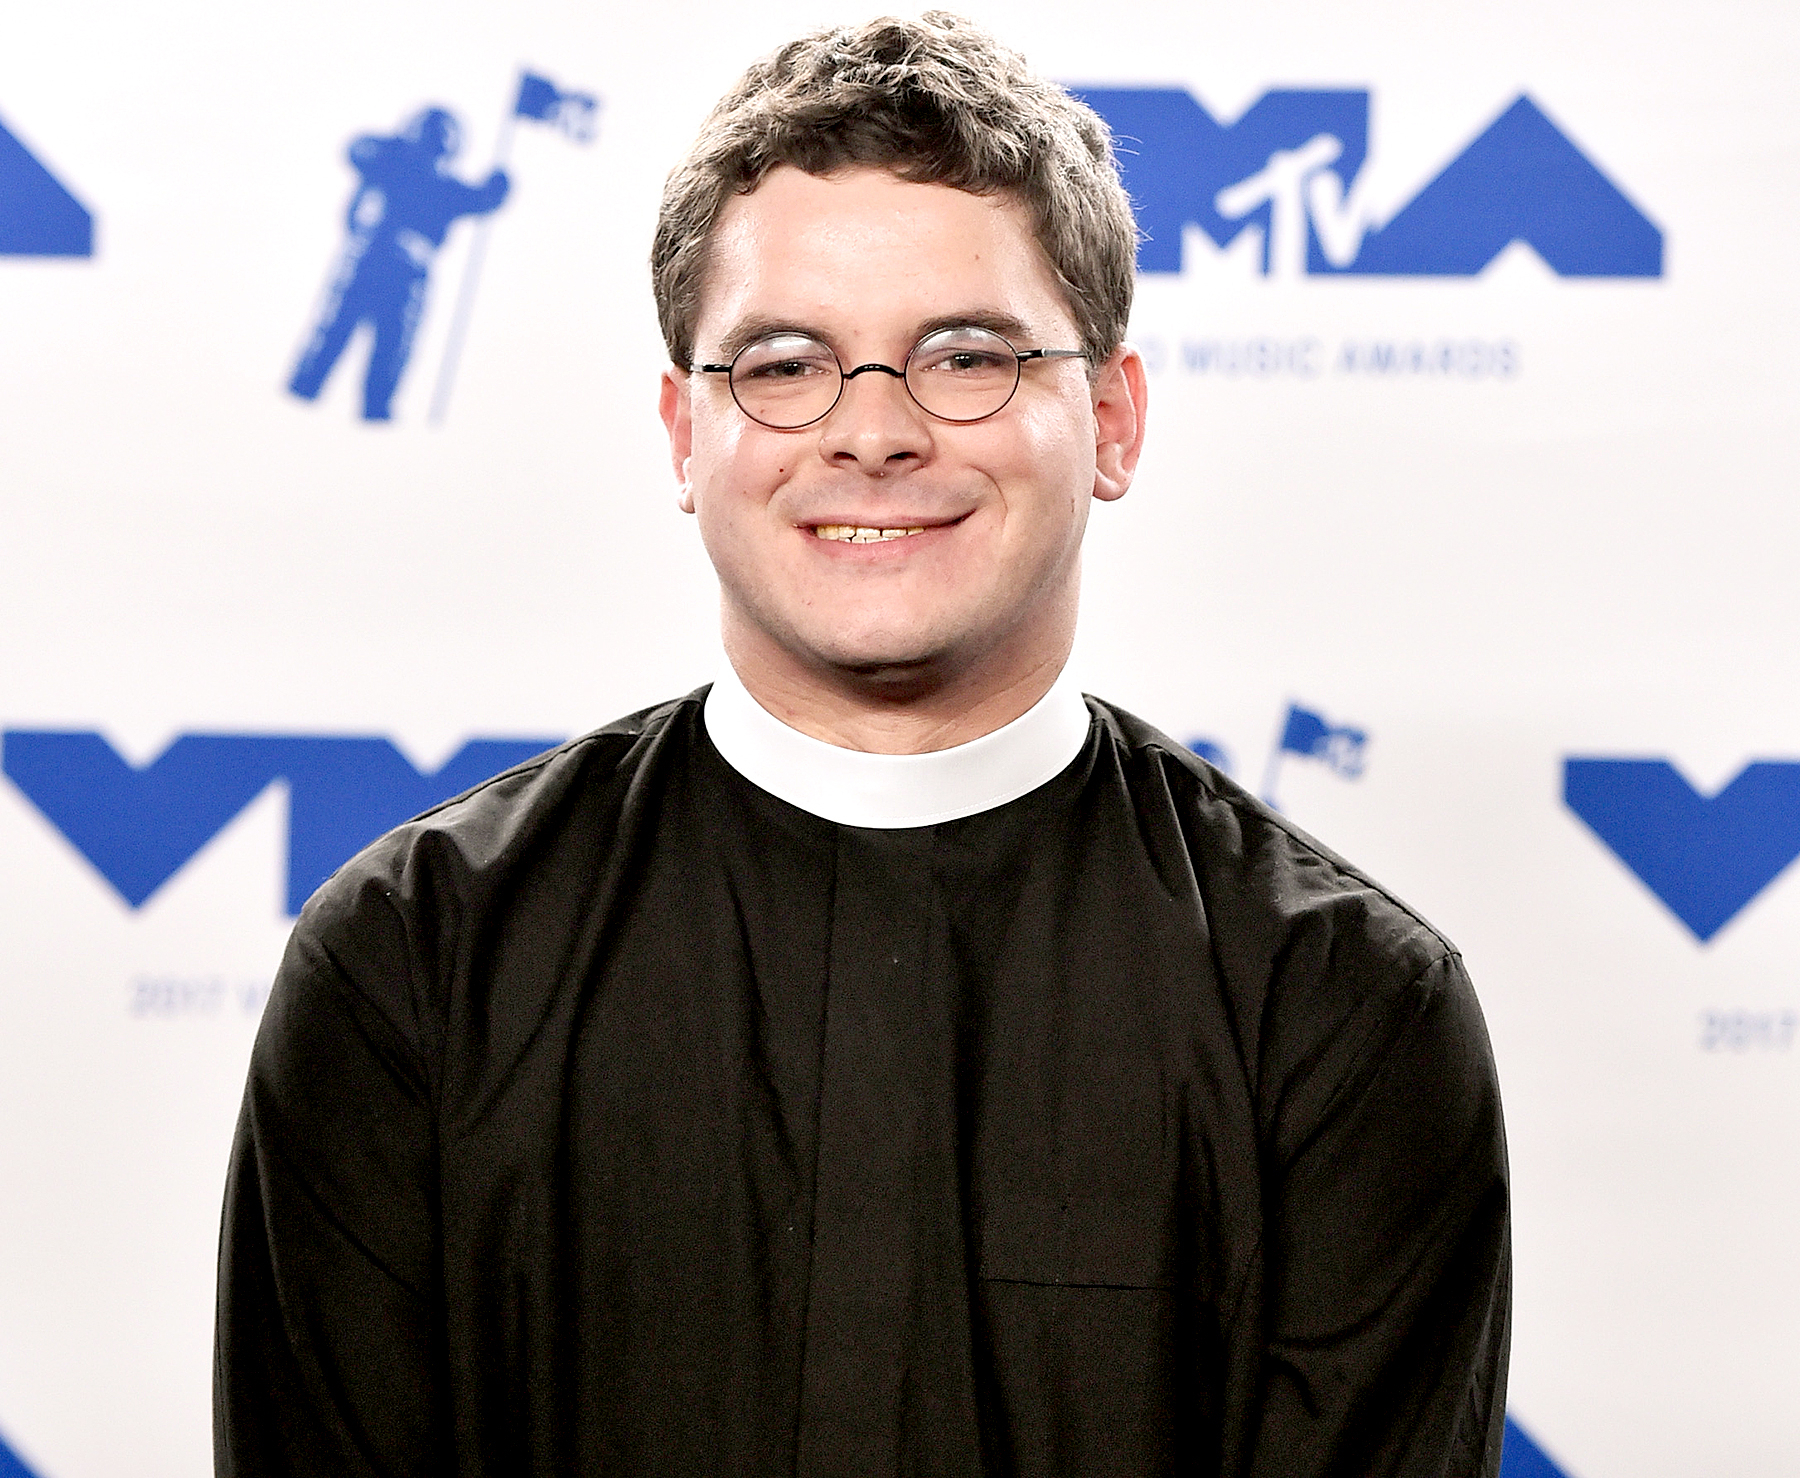 Reverend Robert Wright Lee IV poses in the press room during the 2017 MTV Video Music Awards at The Forum in Inglewood, California, on August 27, 2017.